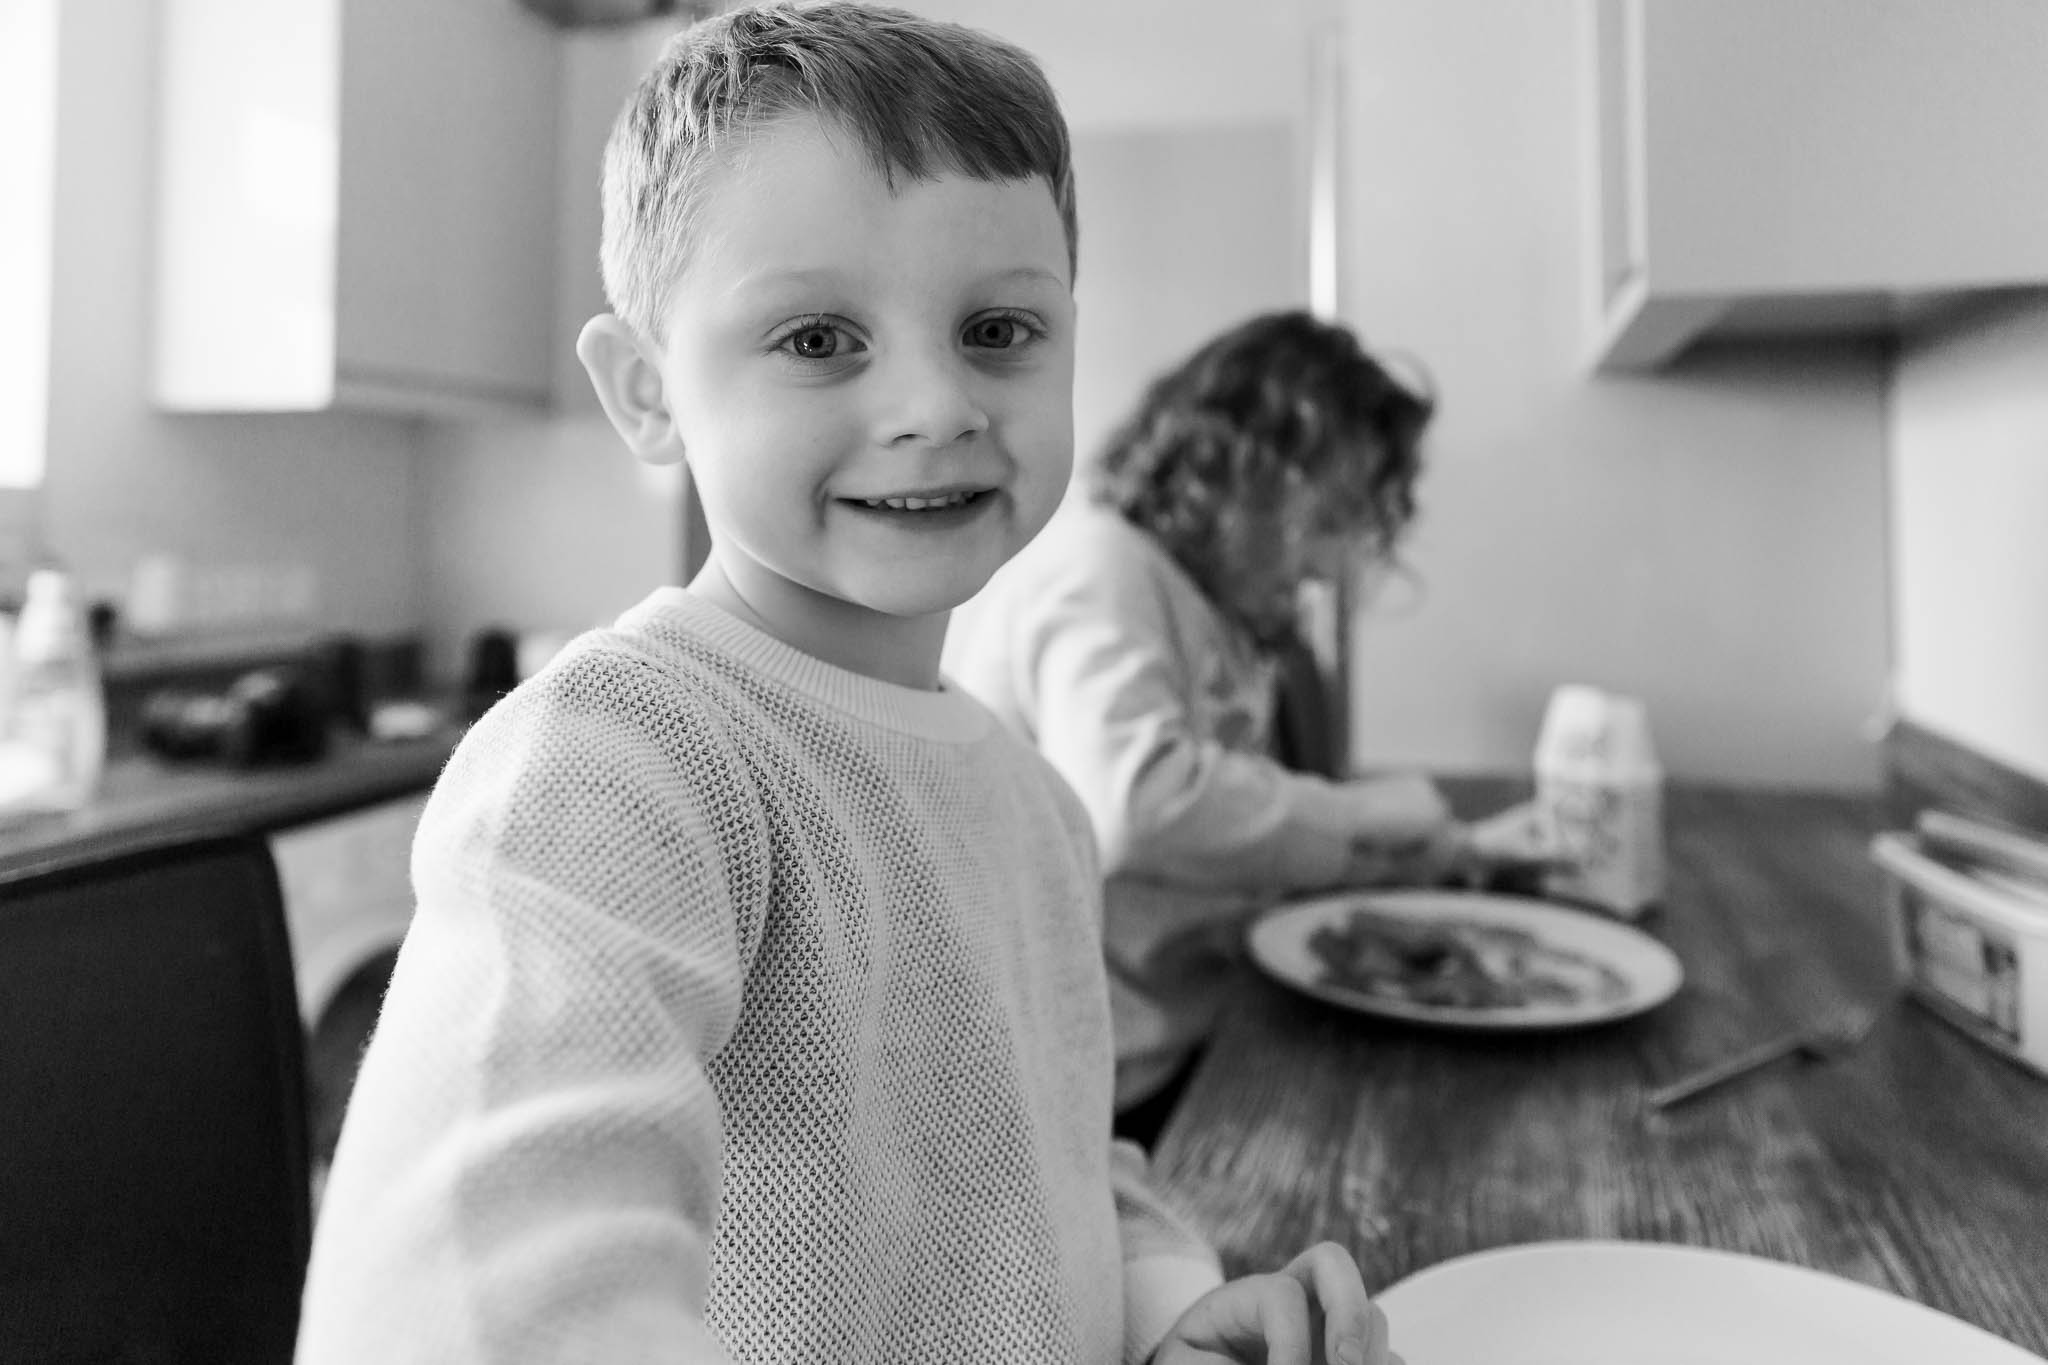 little boy smiling and waiting for pancake